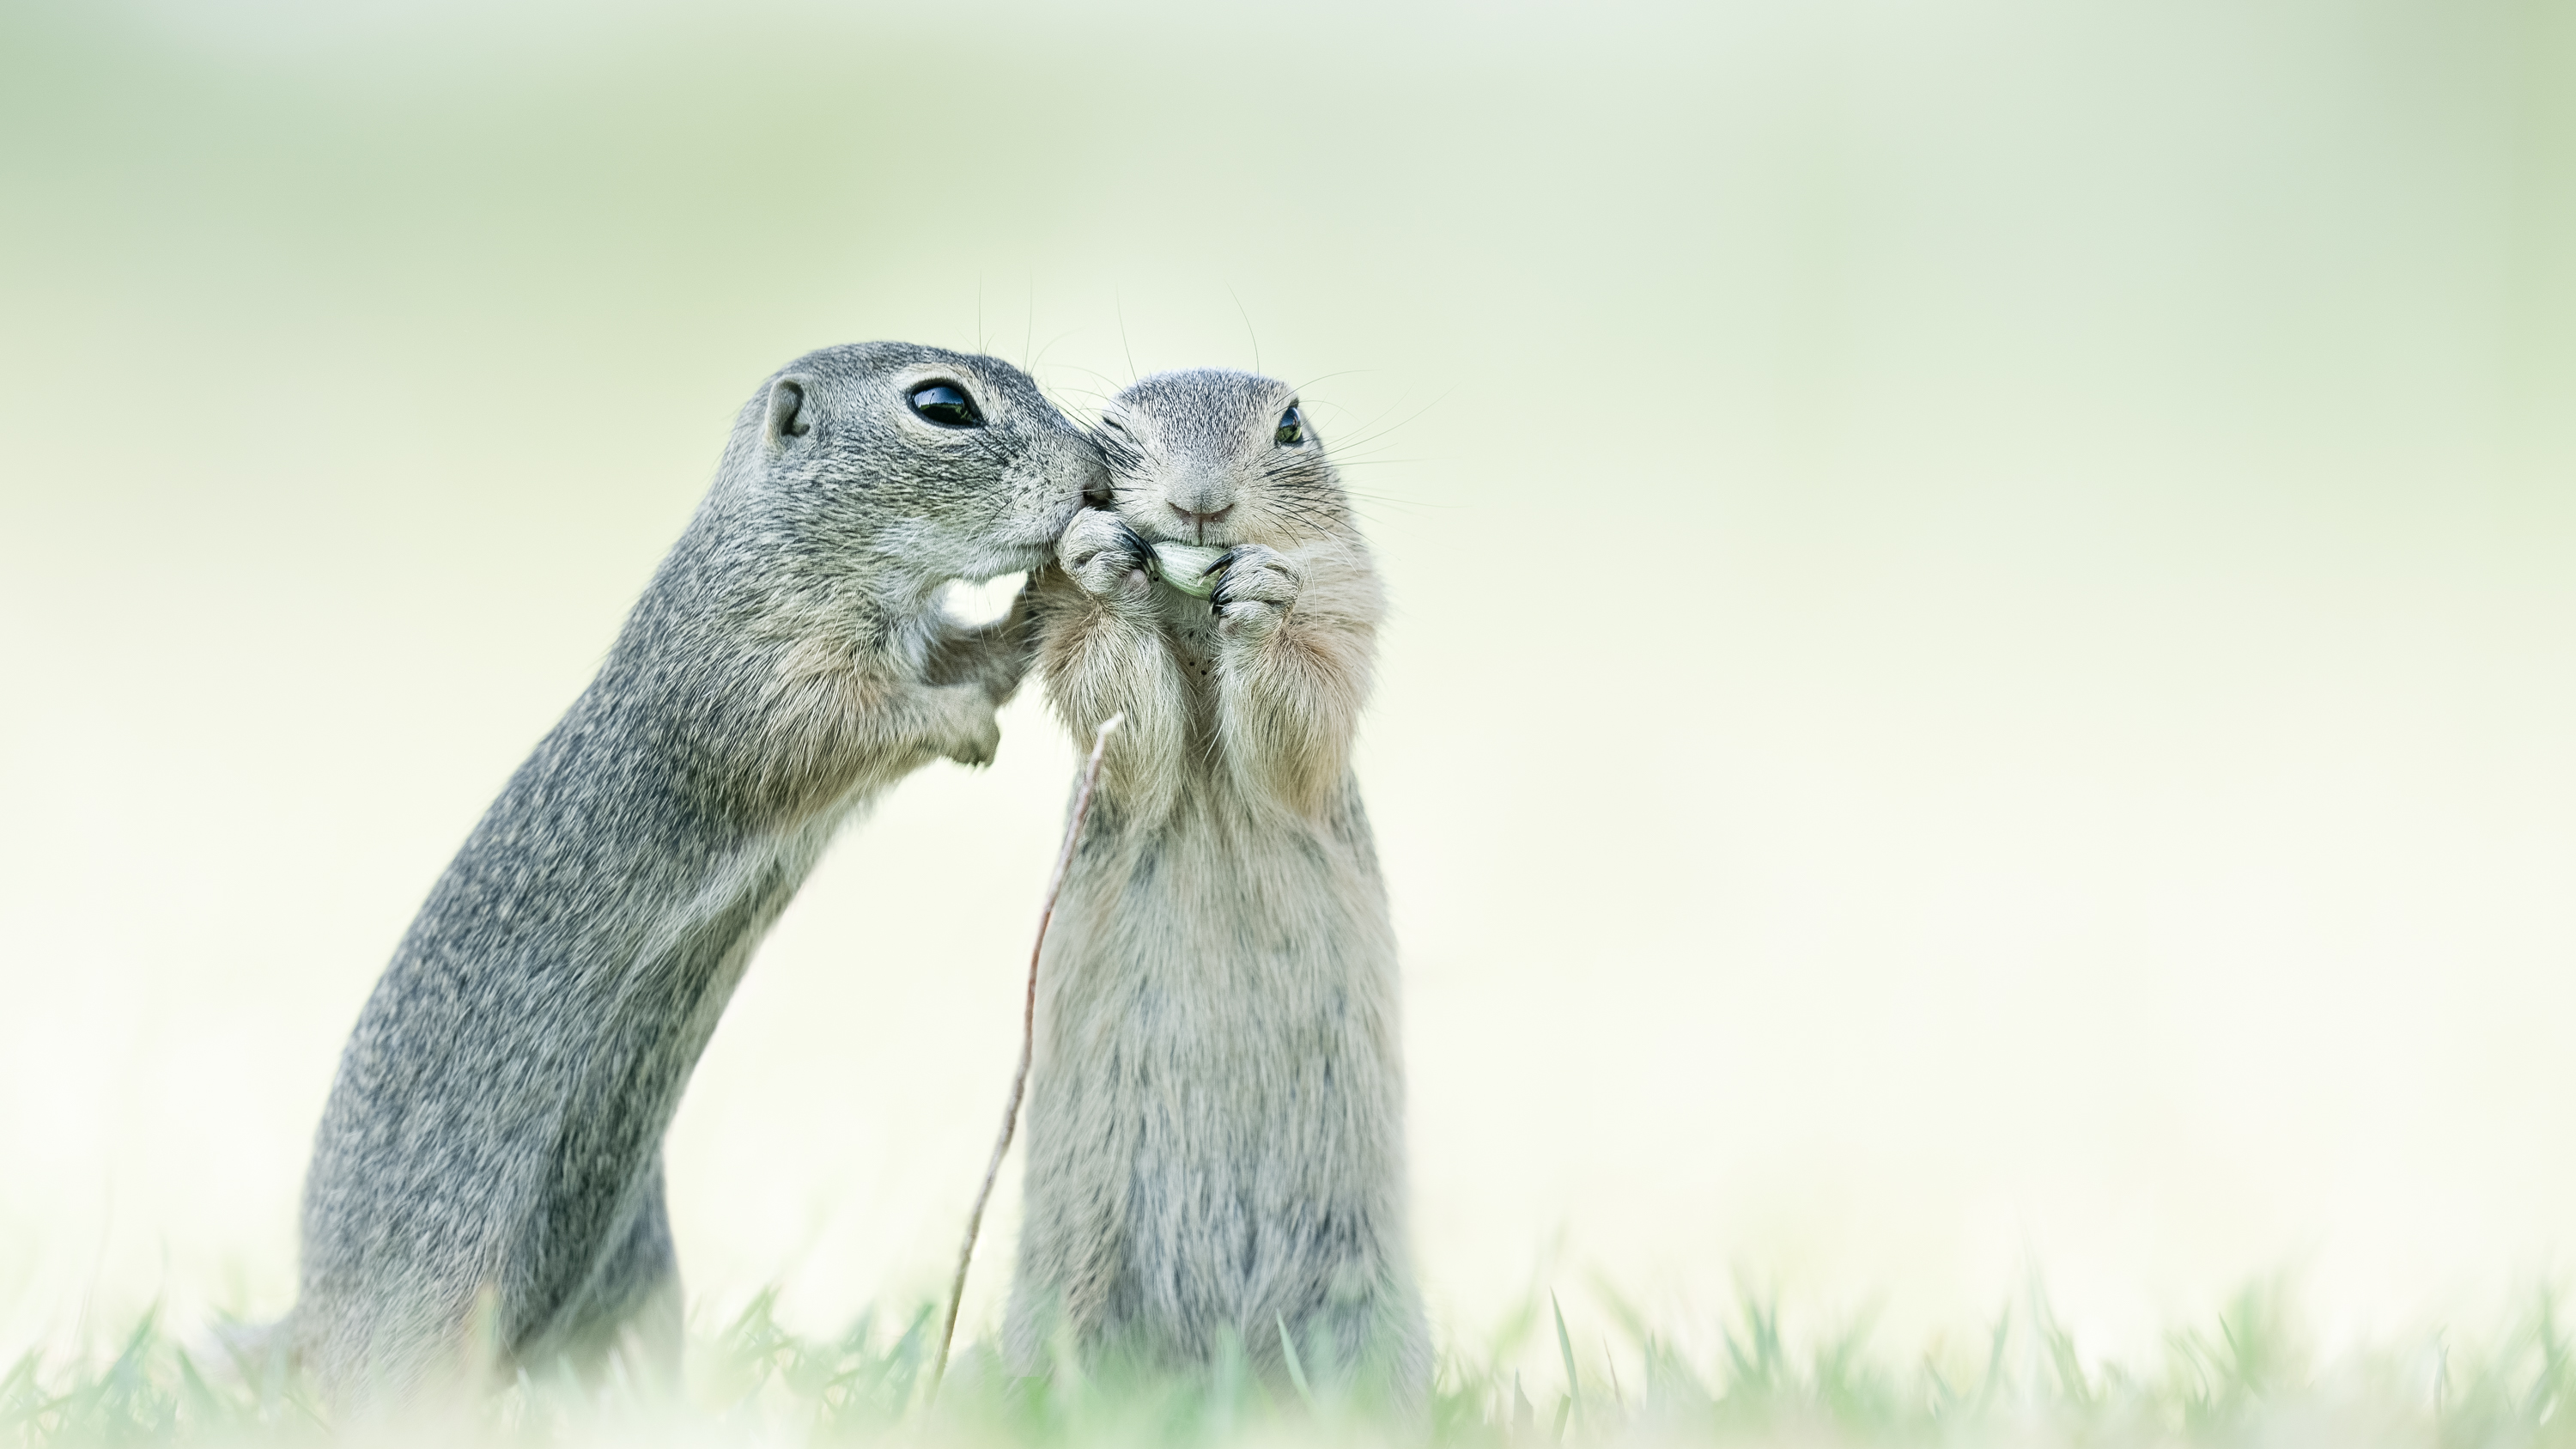 © Alex Pansier, Netherlands, entry, Open competition, Natural World & Wildlife, 2021 Sony World Photography Awards